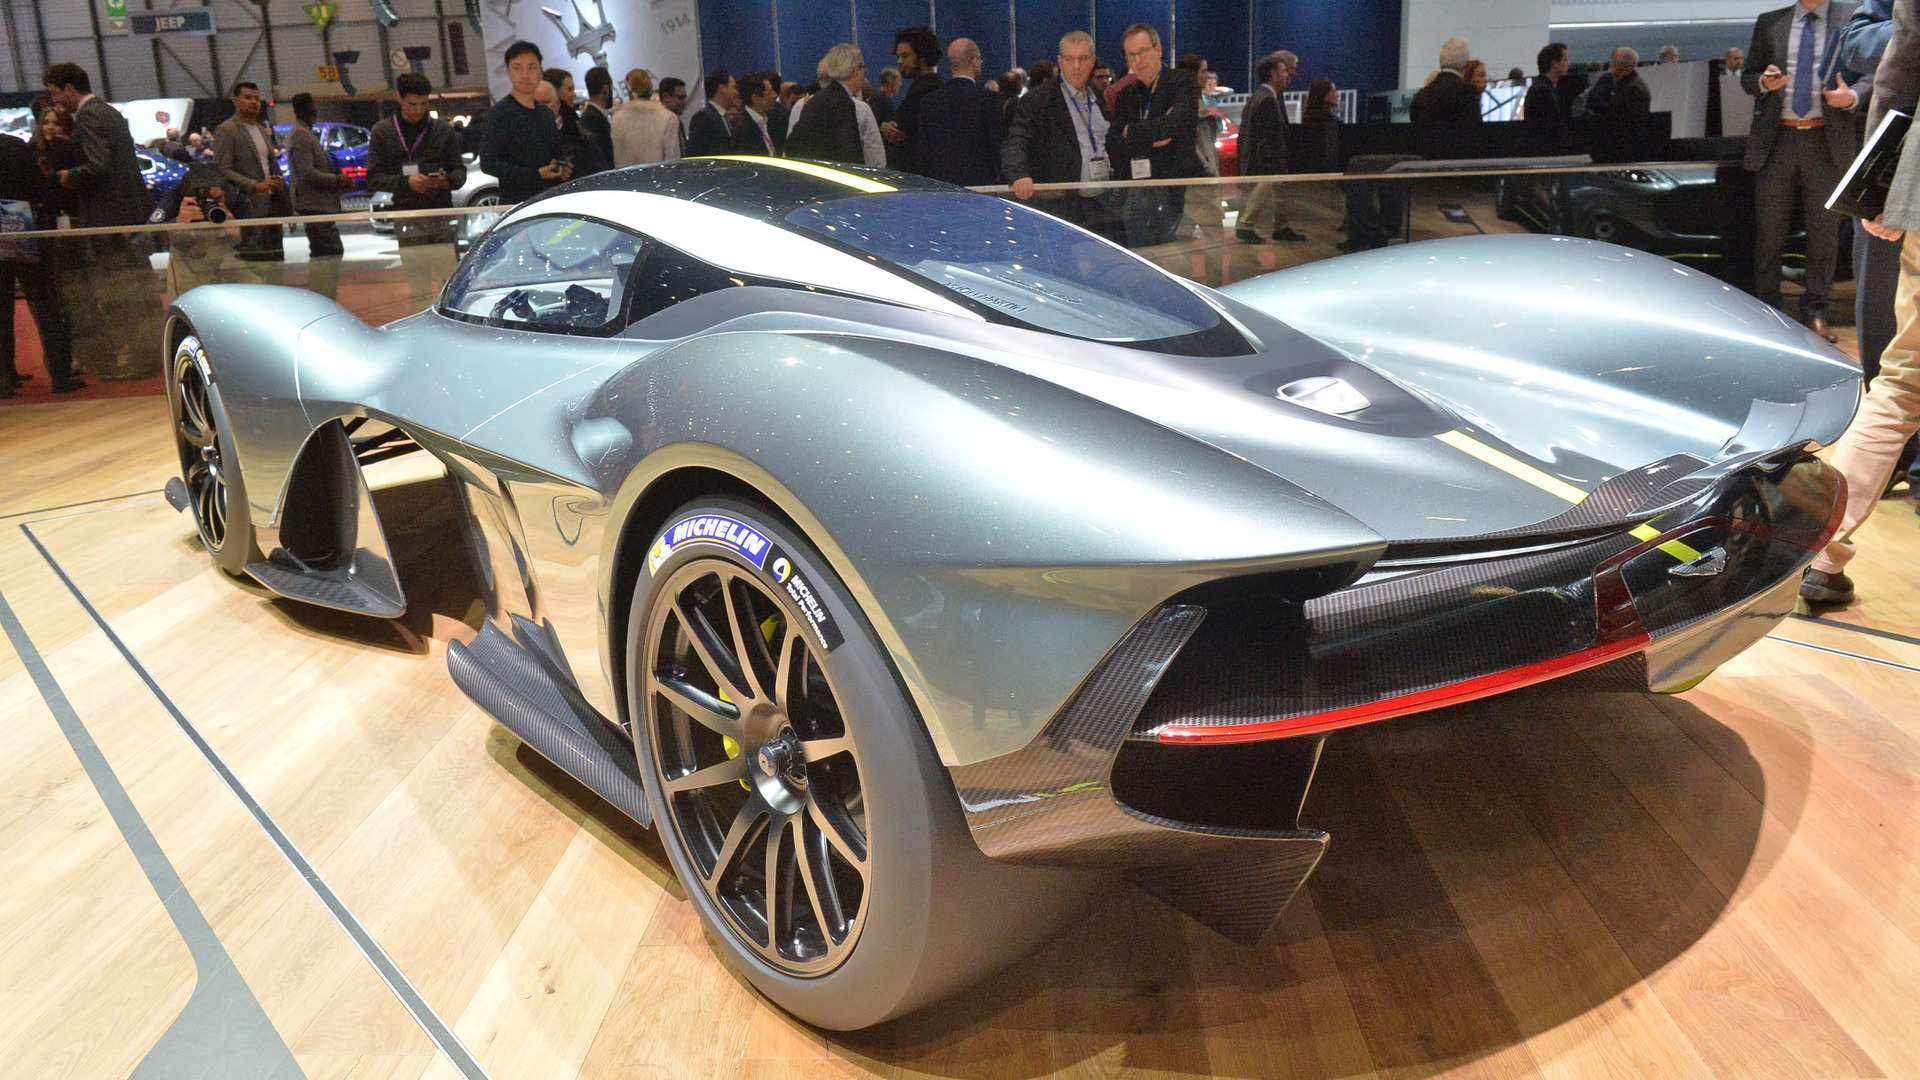 18 Gallery of 2019 Aston Martin Valkyrie Price with 2019 Aston Martin Valkyrie